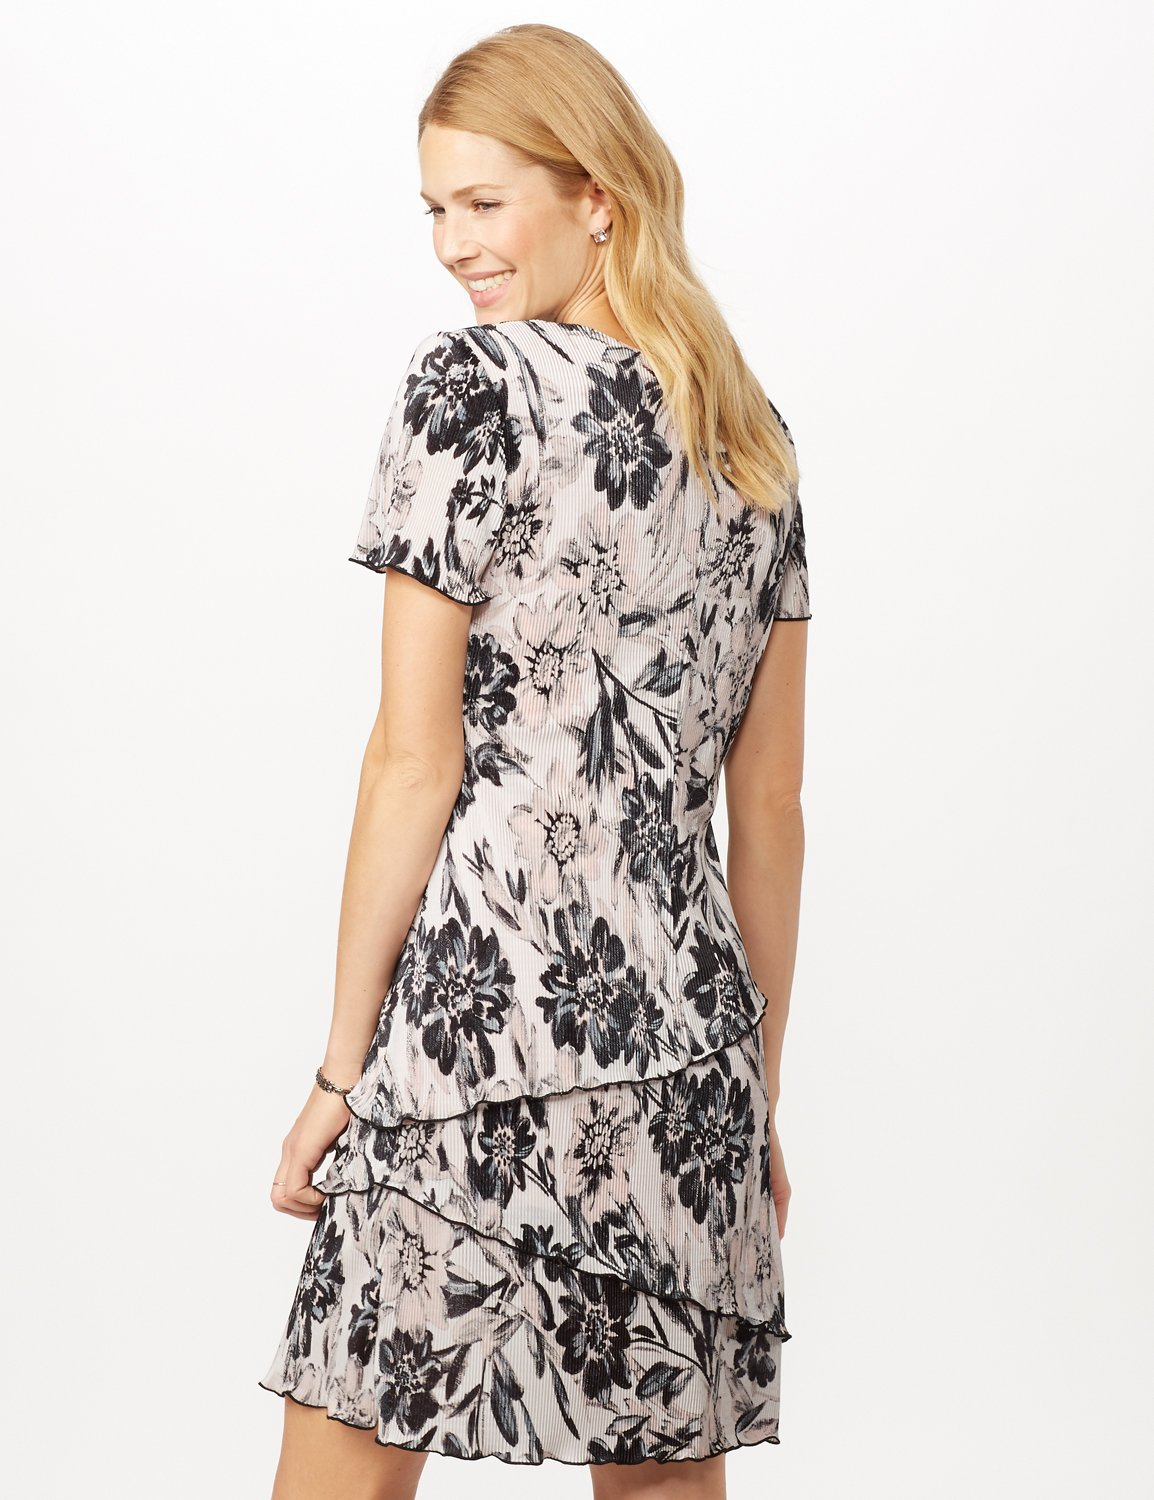 Floral Bodre Tier Dress -White/black - Back